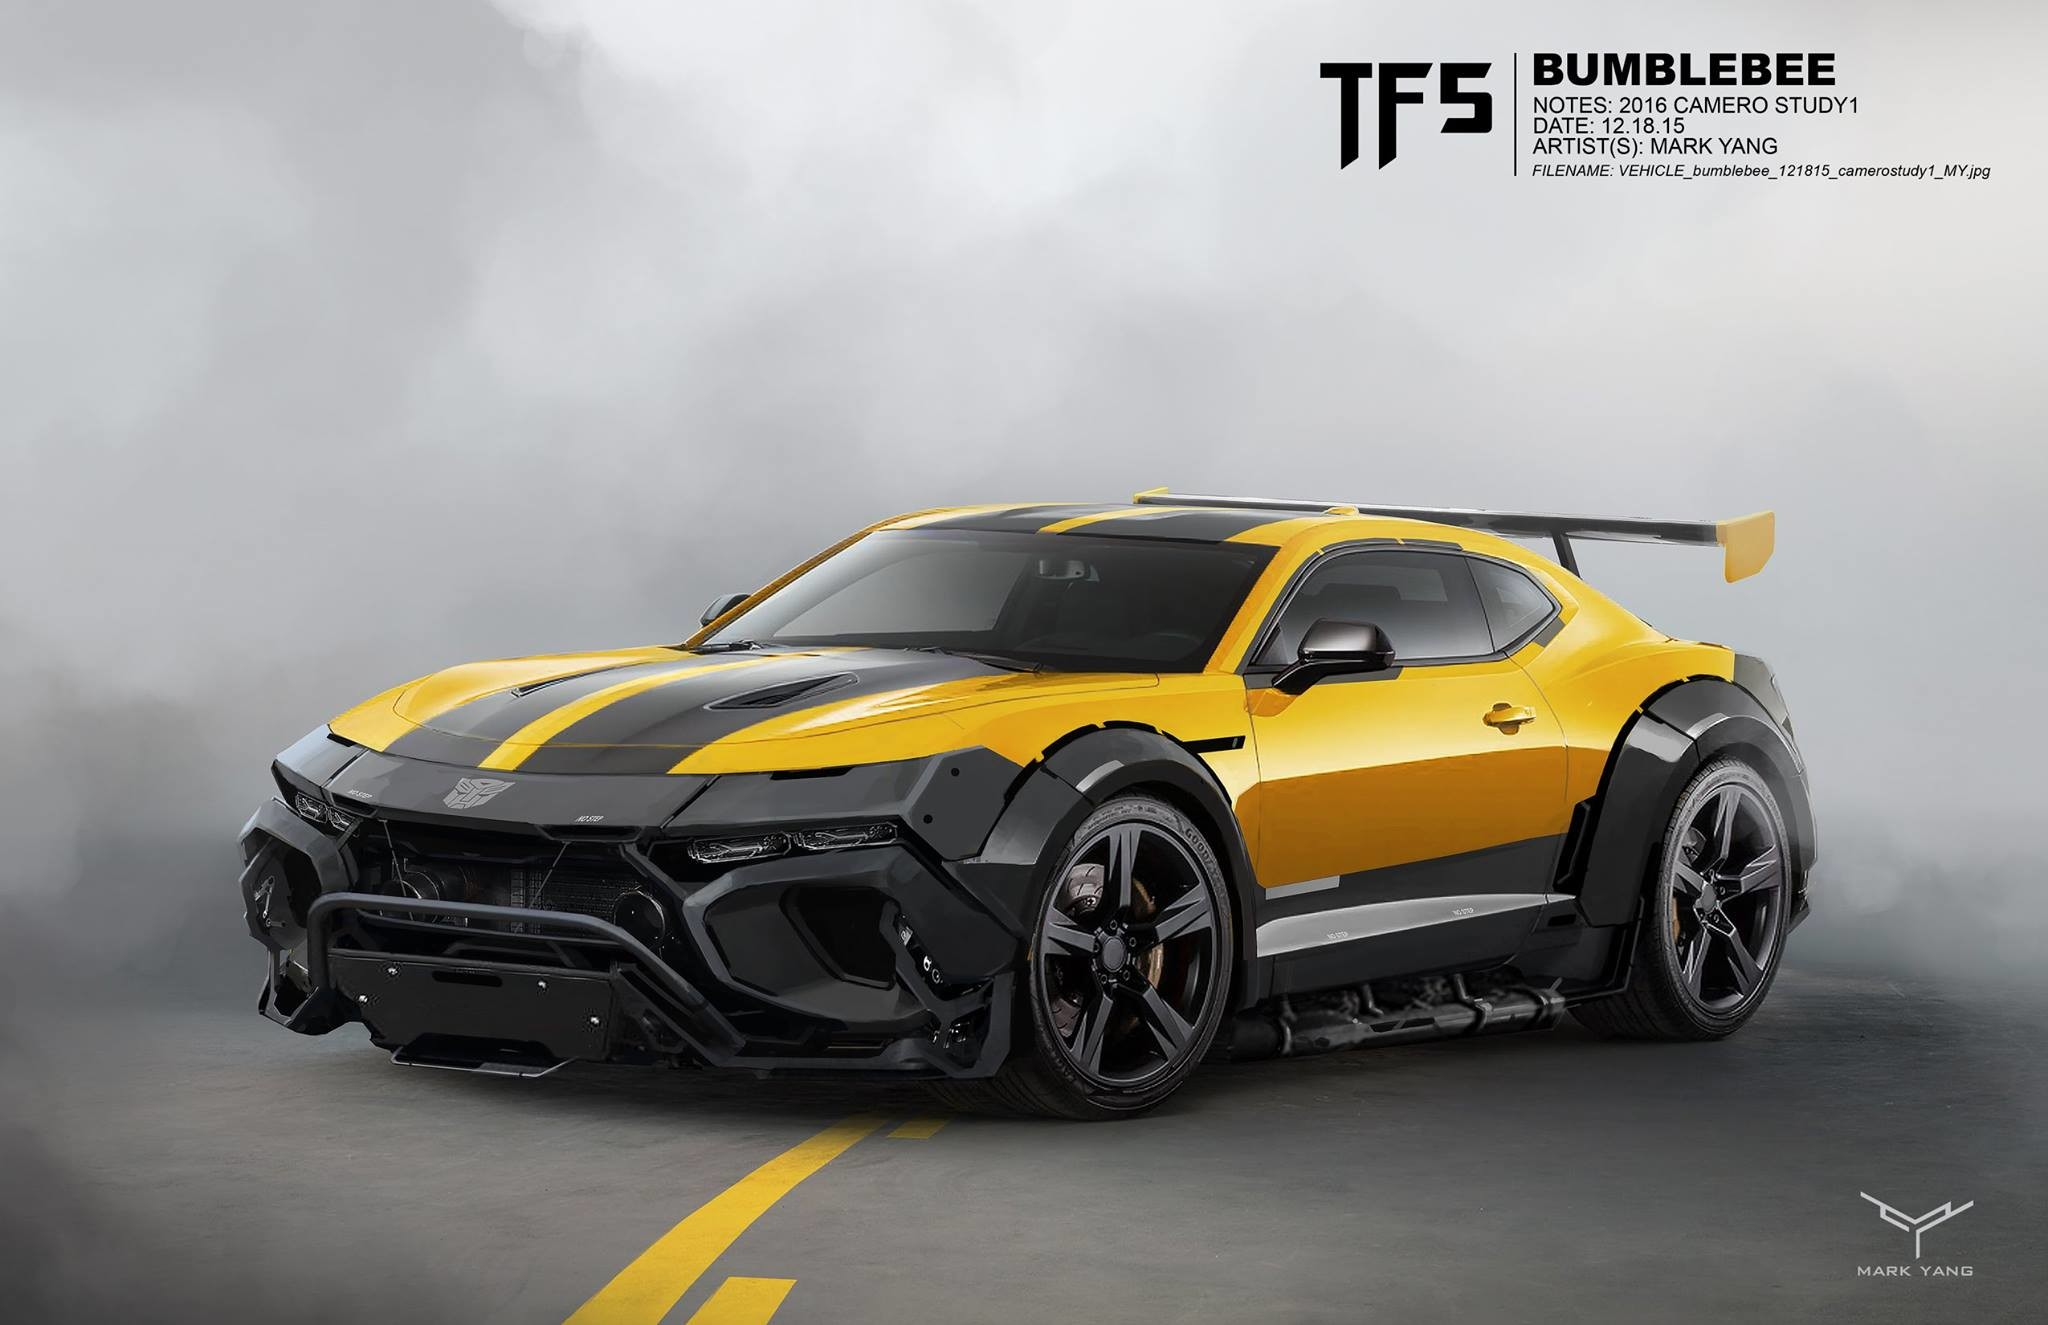 Bumblebee 2018 Wallpaper Hd 66 Images